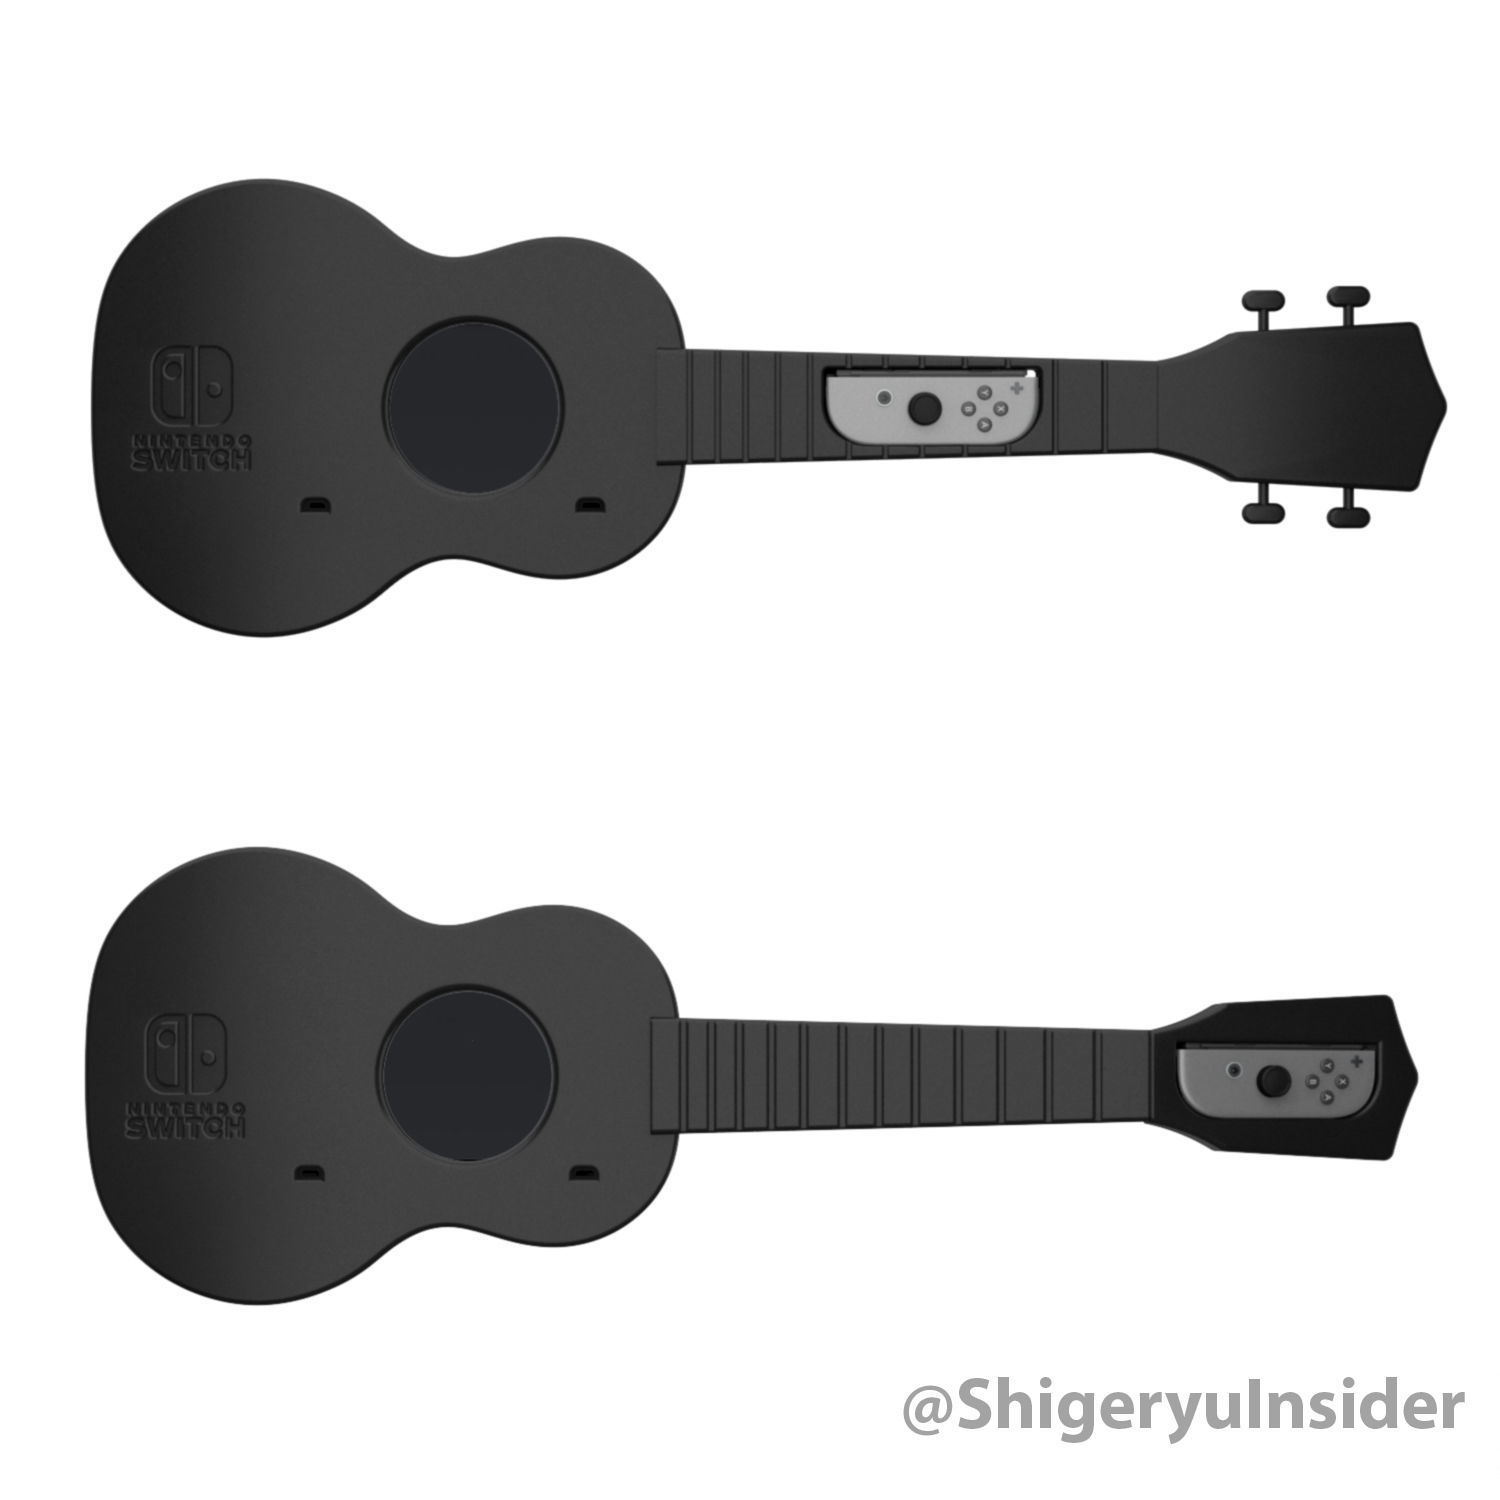 graphic regarding Guitar Printable called Ukulele Guitar for Nintendo exchange 3D Print Design